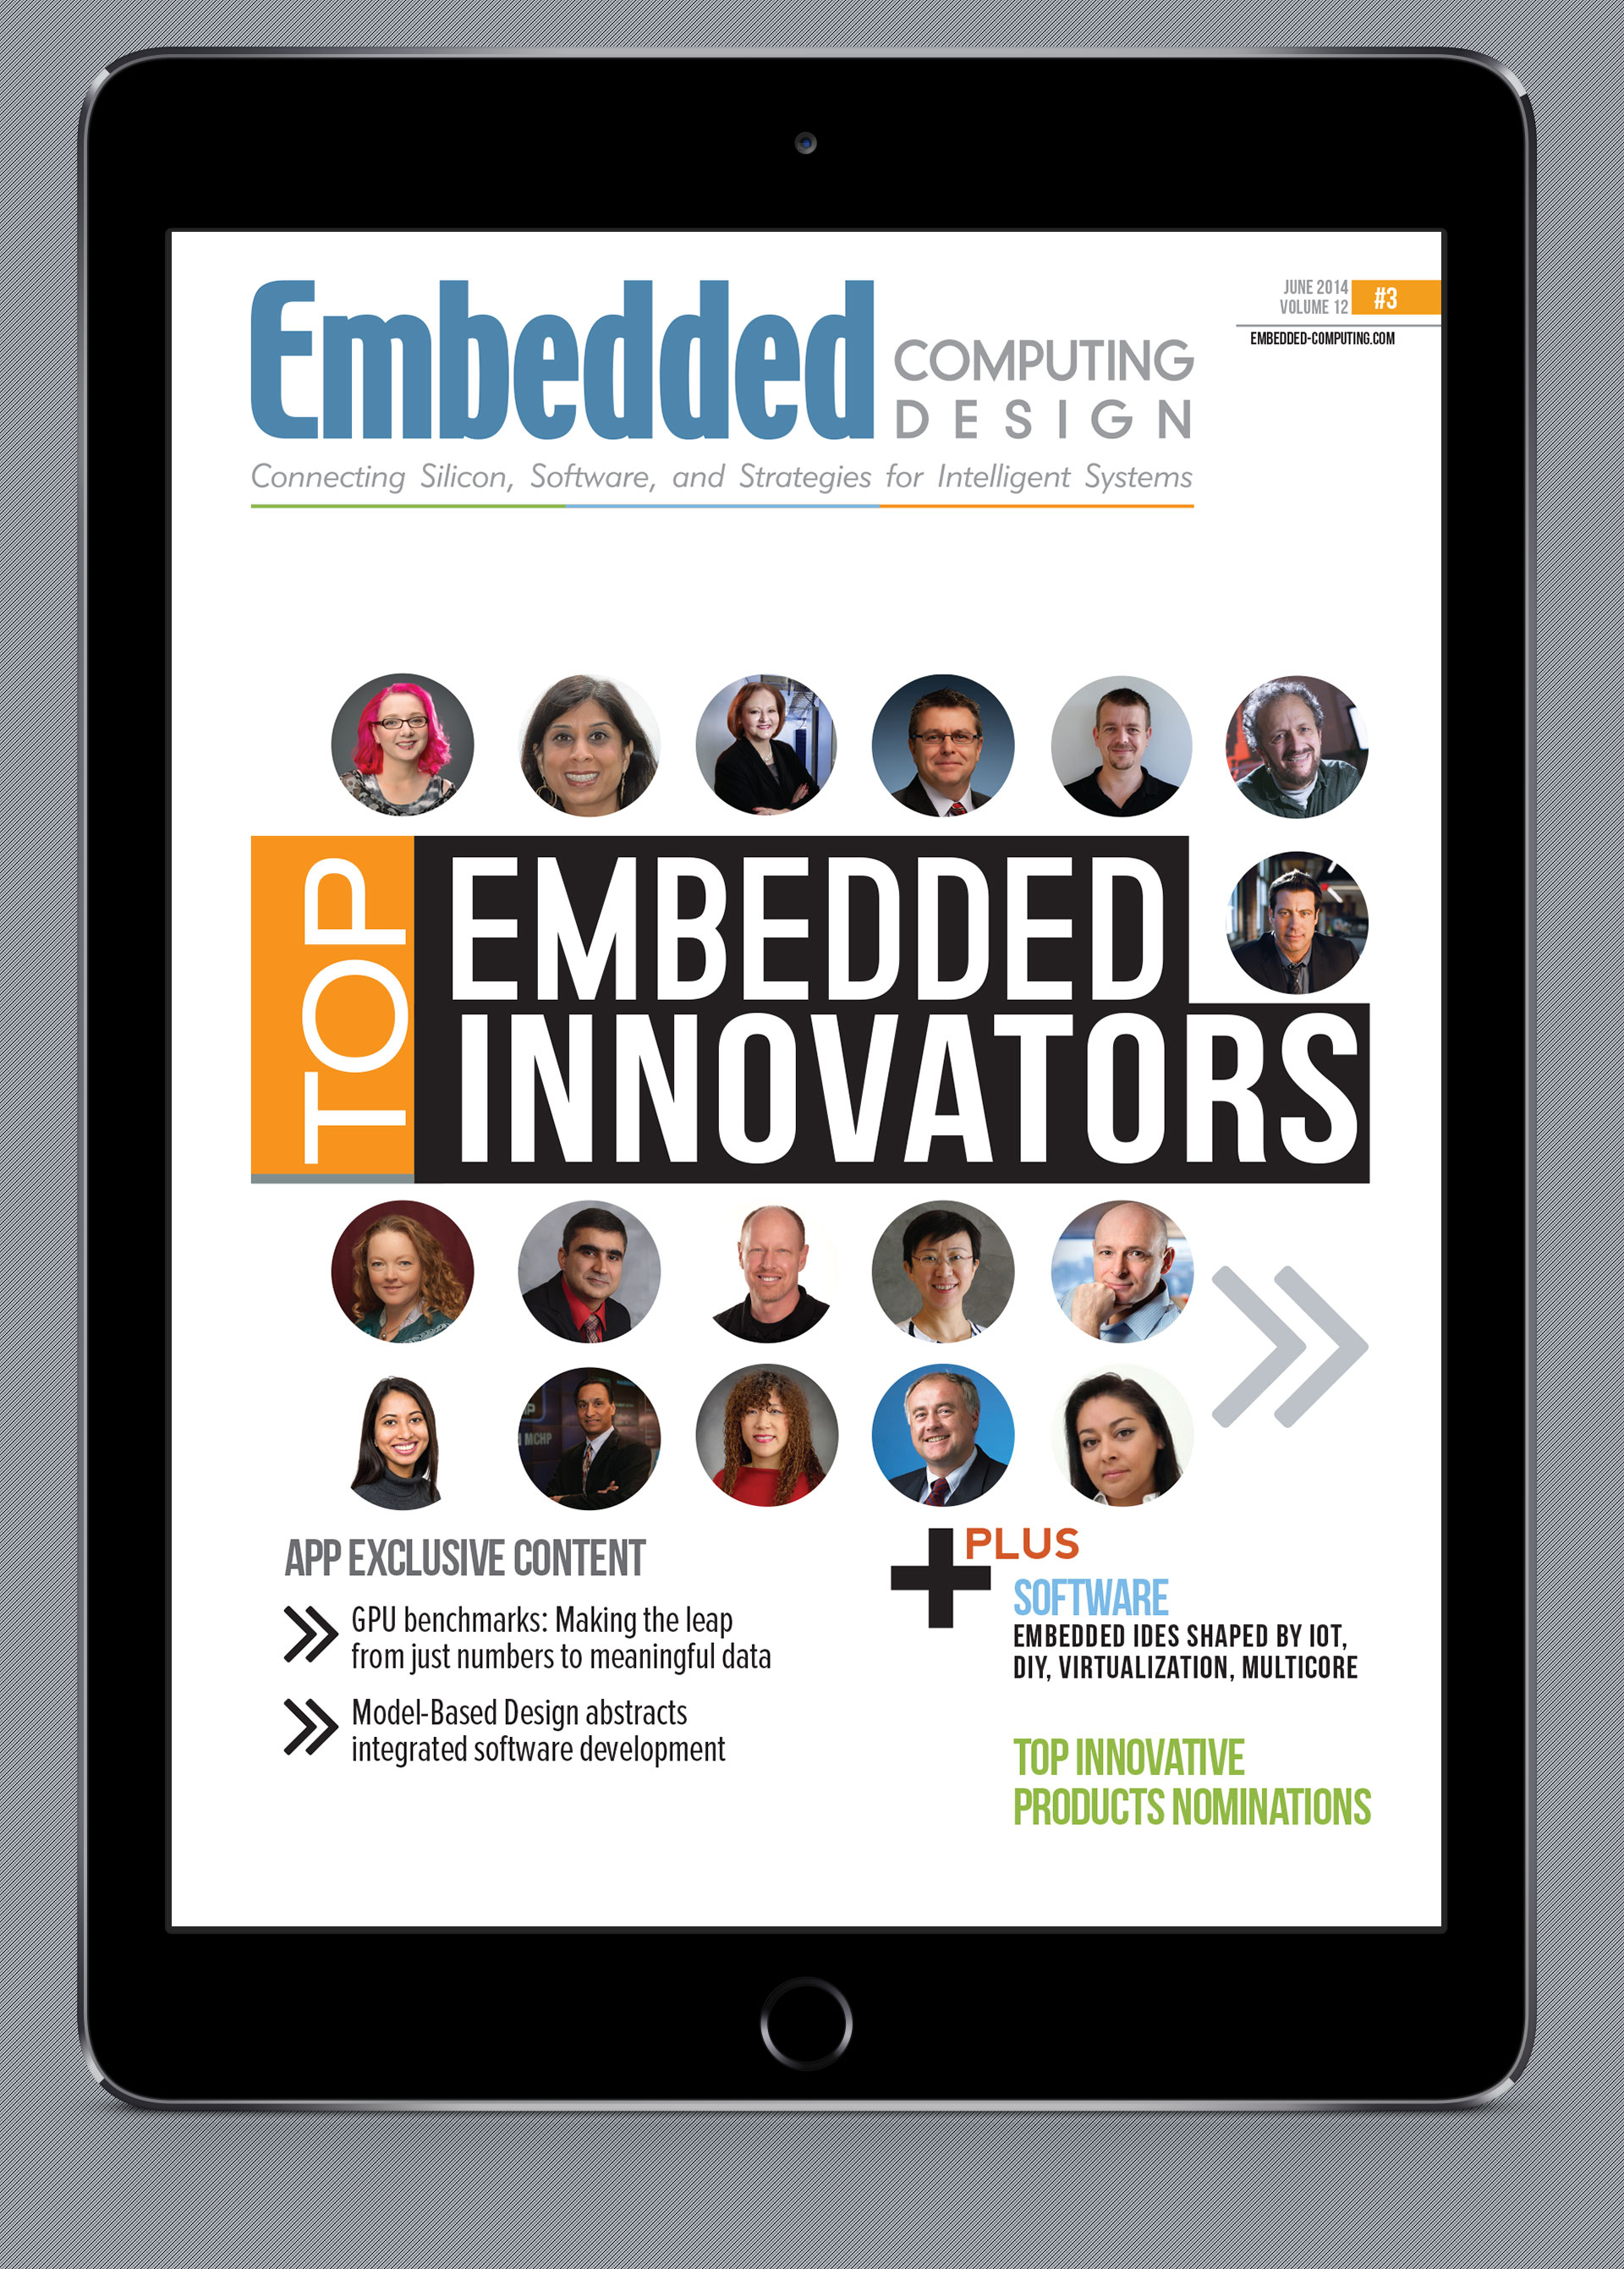 ECD Top Embedded Innovators